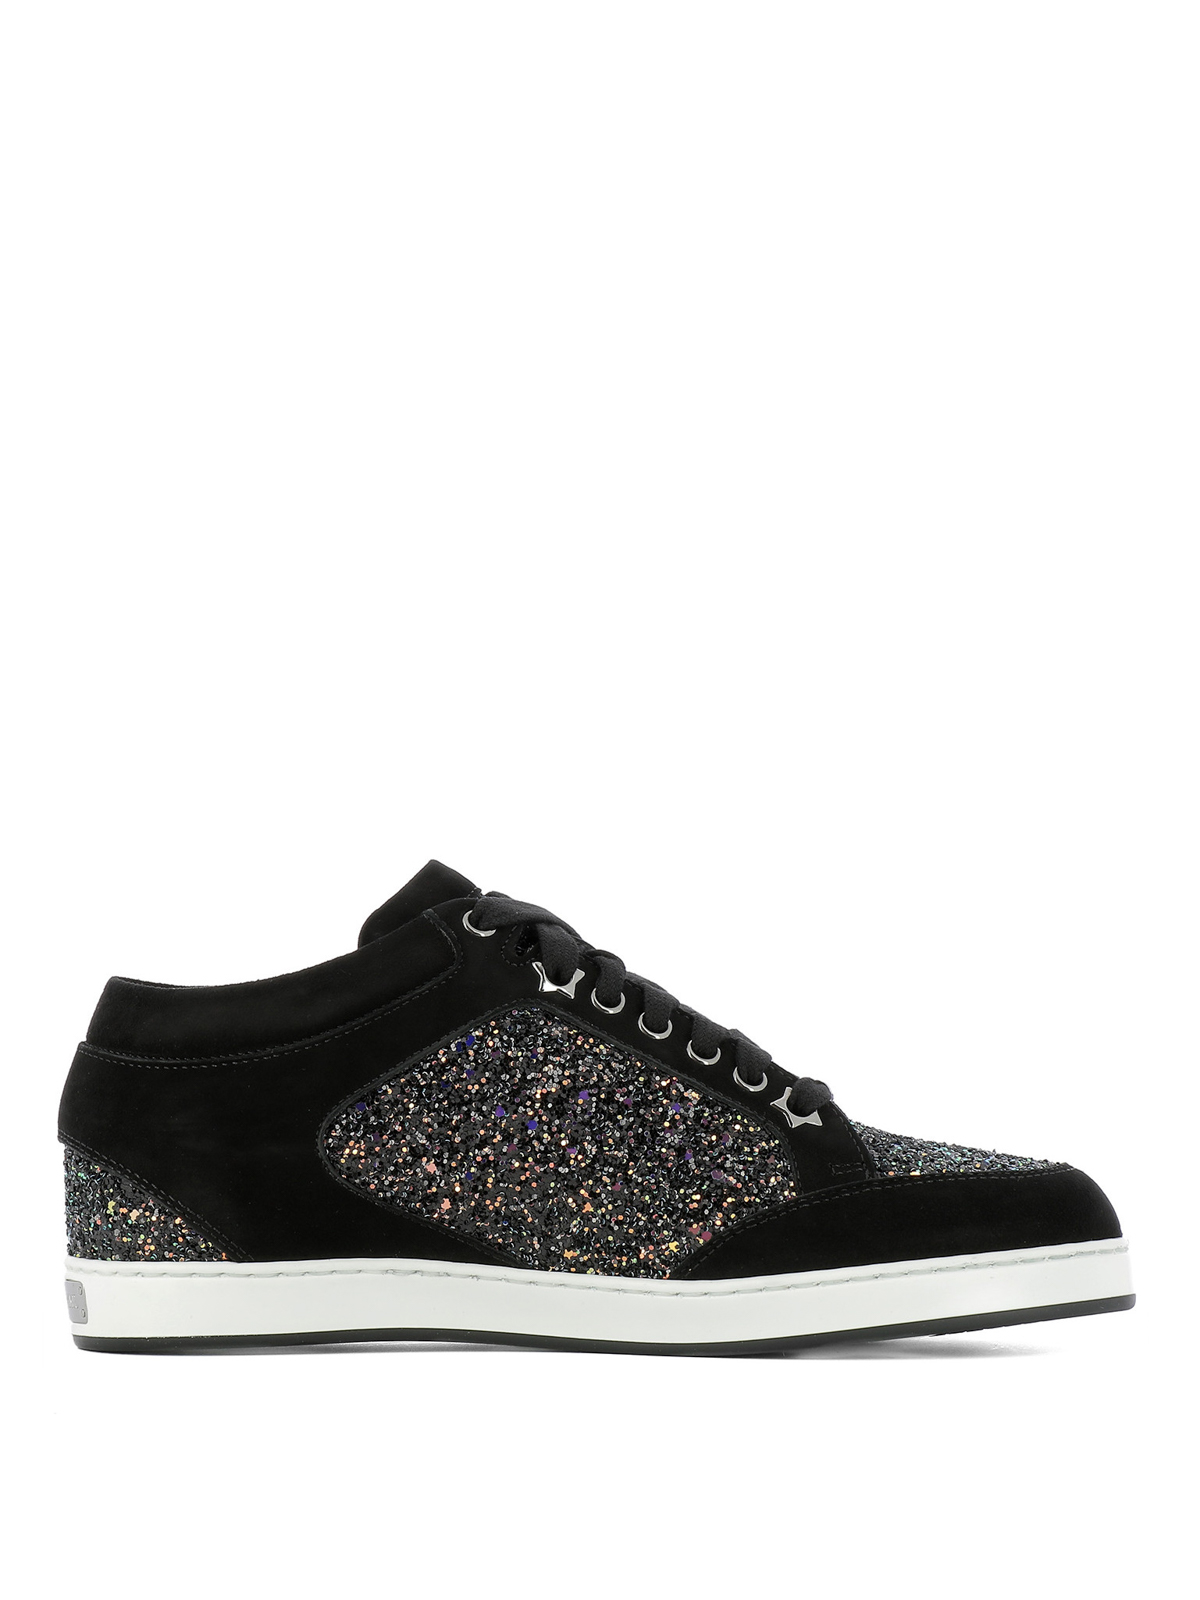 Jimmy Choo Miami Suede And Glitter Sneakers Trainers